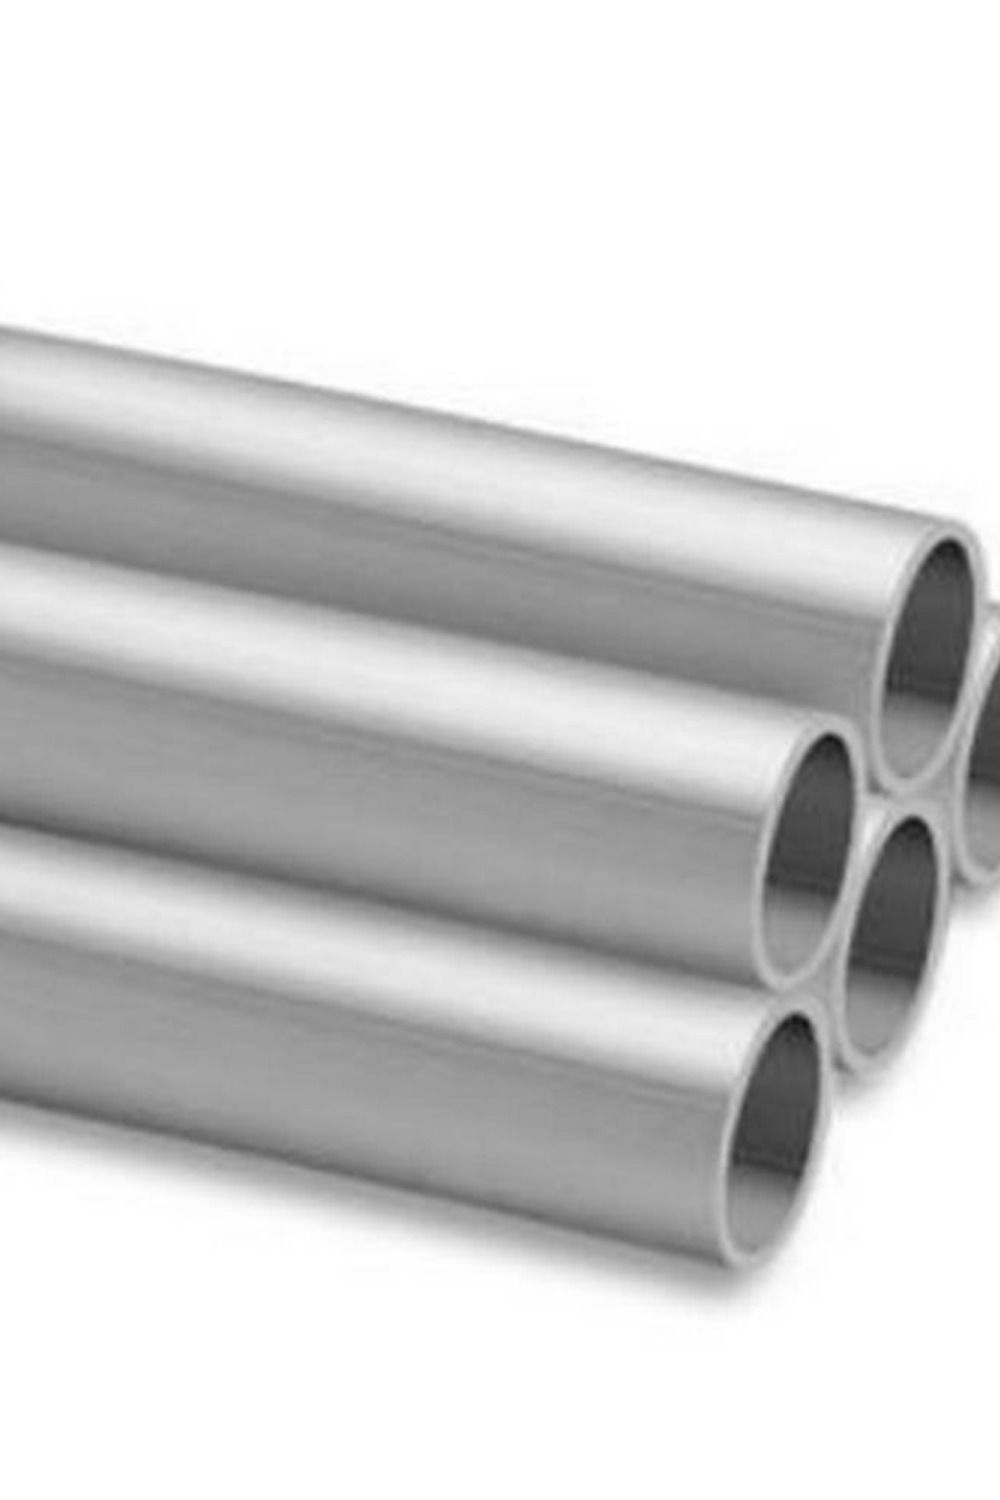 Pin On Stainless Steel Pipe Railing